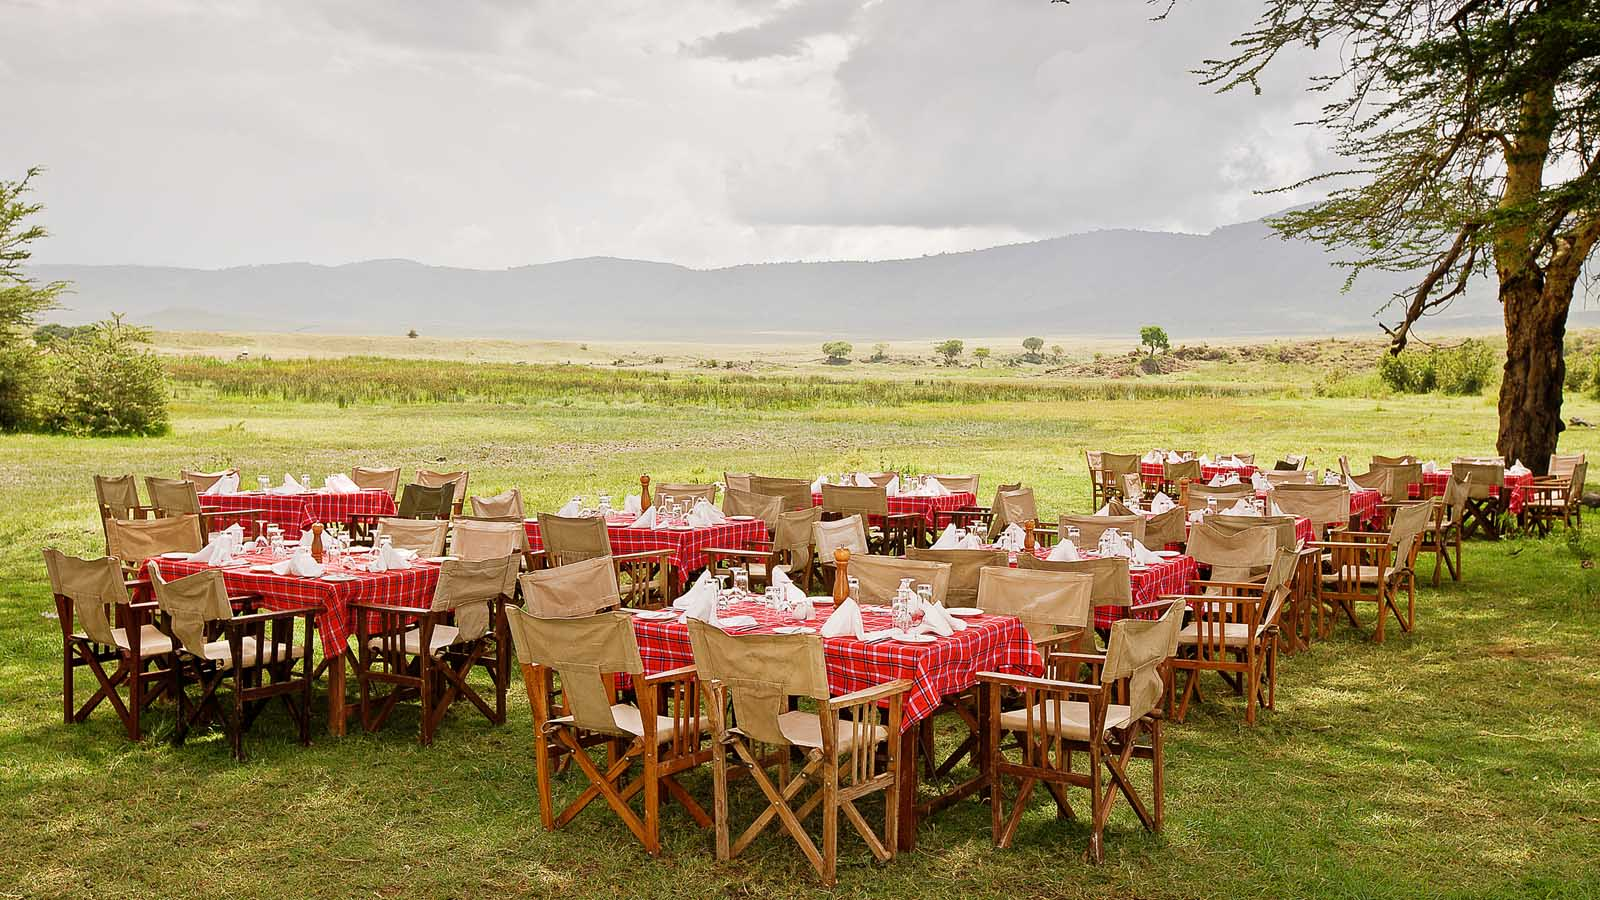 Ngorongoro Sopa Lodge images -- lunch in the Crater